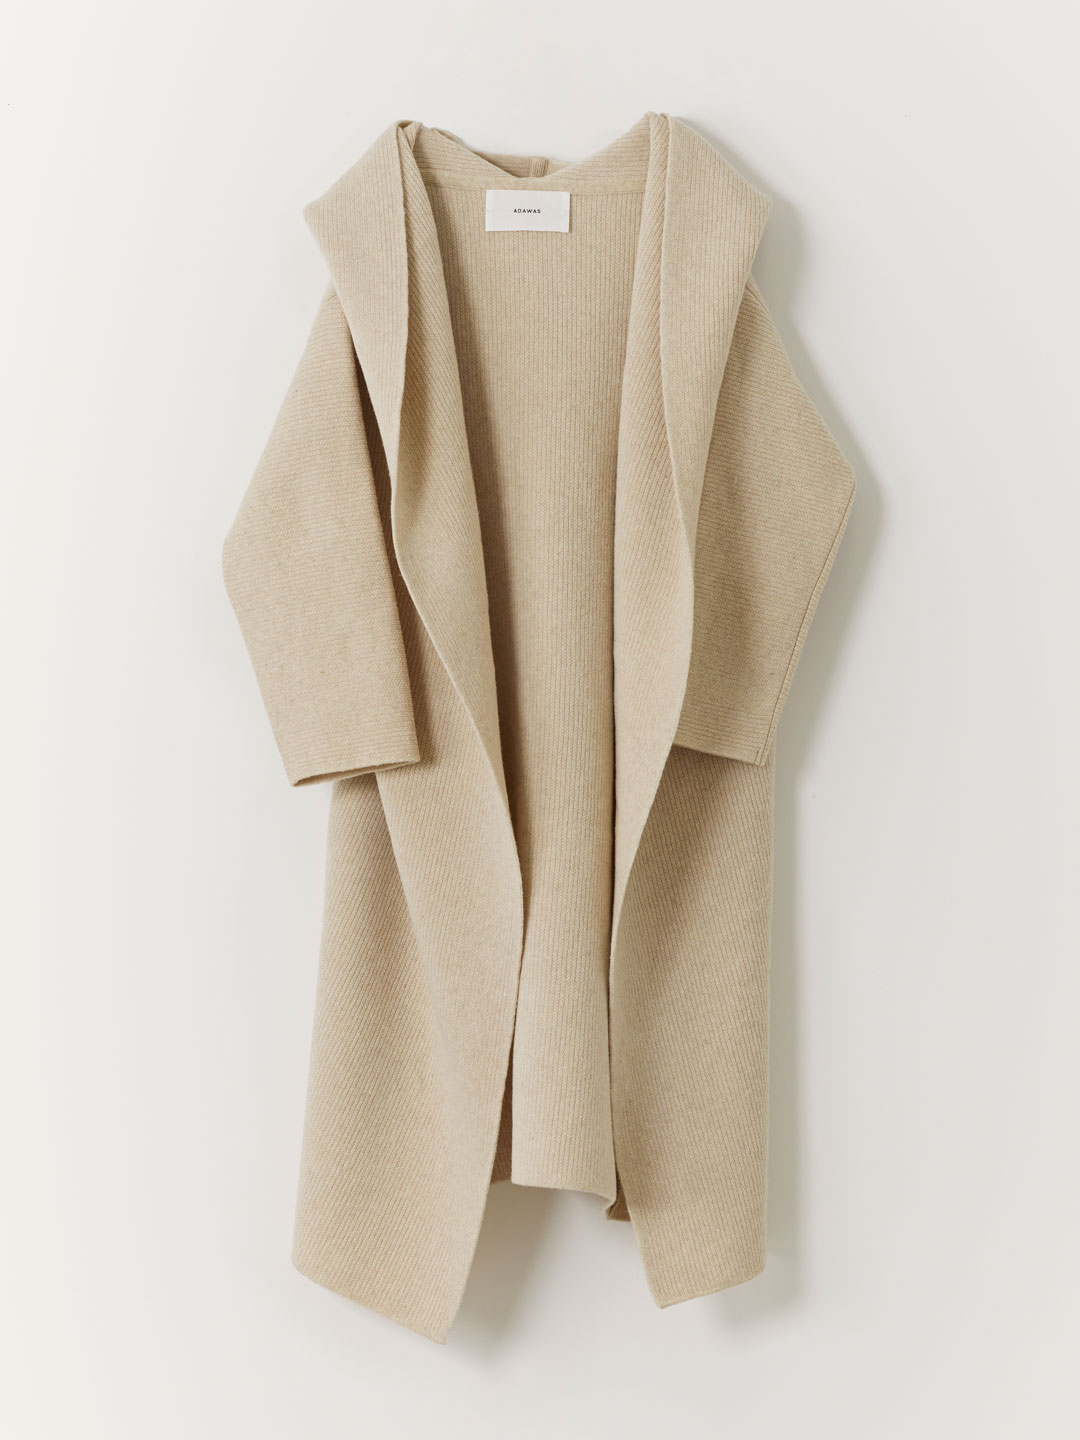 Airy Spongish Hooded Cardigan  - Beige